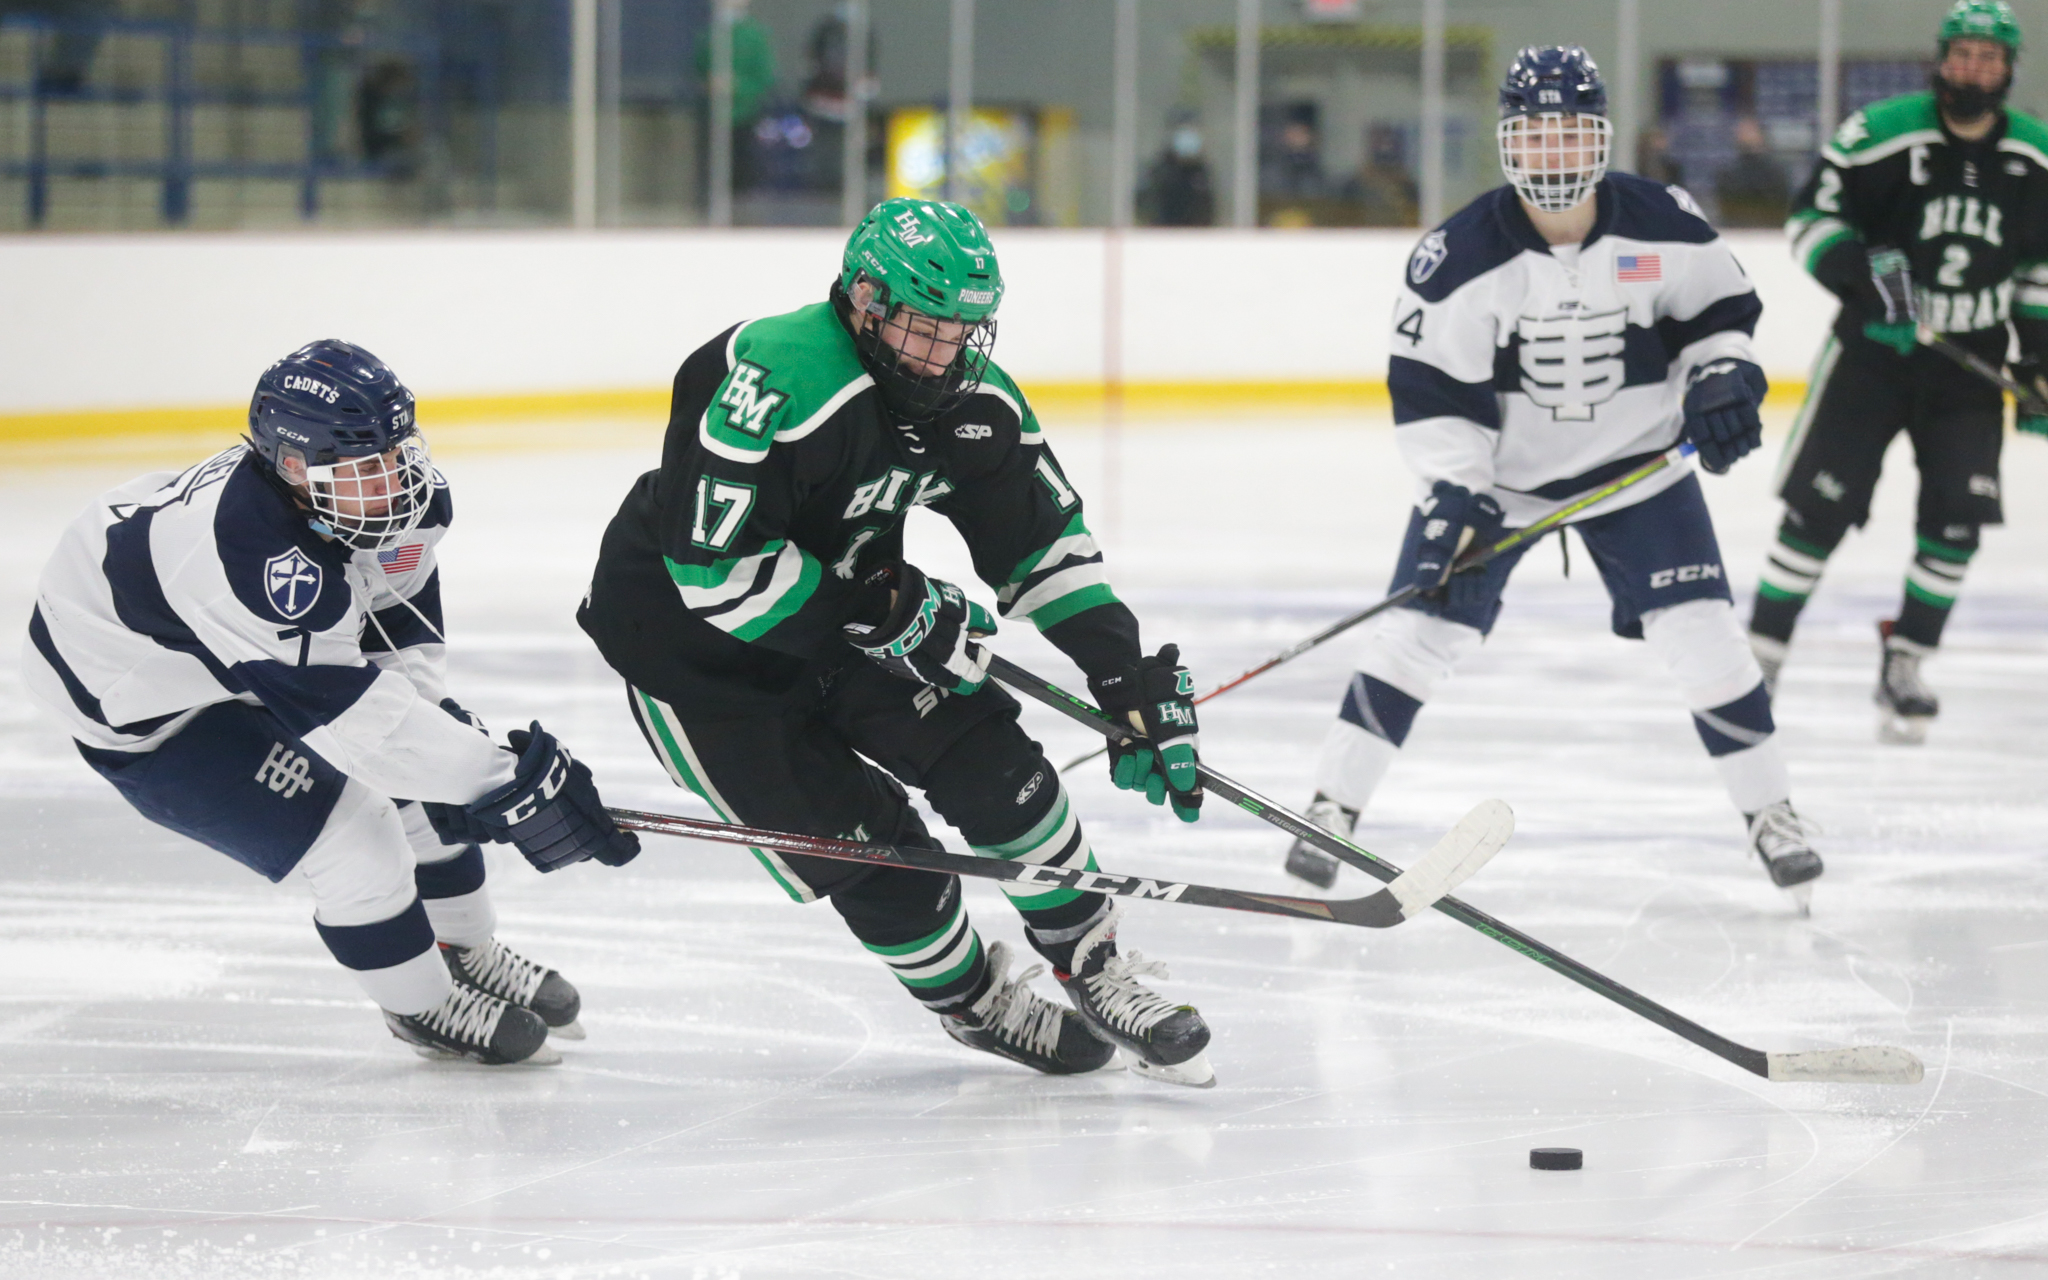 Hill-Murray's Dylan Godbout (17) circles in the offensive zone moments before scoring his second goal of the game against St. Thomas Academy Tuesday night. The Pioneers defeated the Cadets 7-3 in Mendota Heights. Photo by Jeff Lawler, SportsEngine